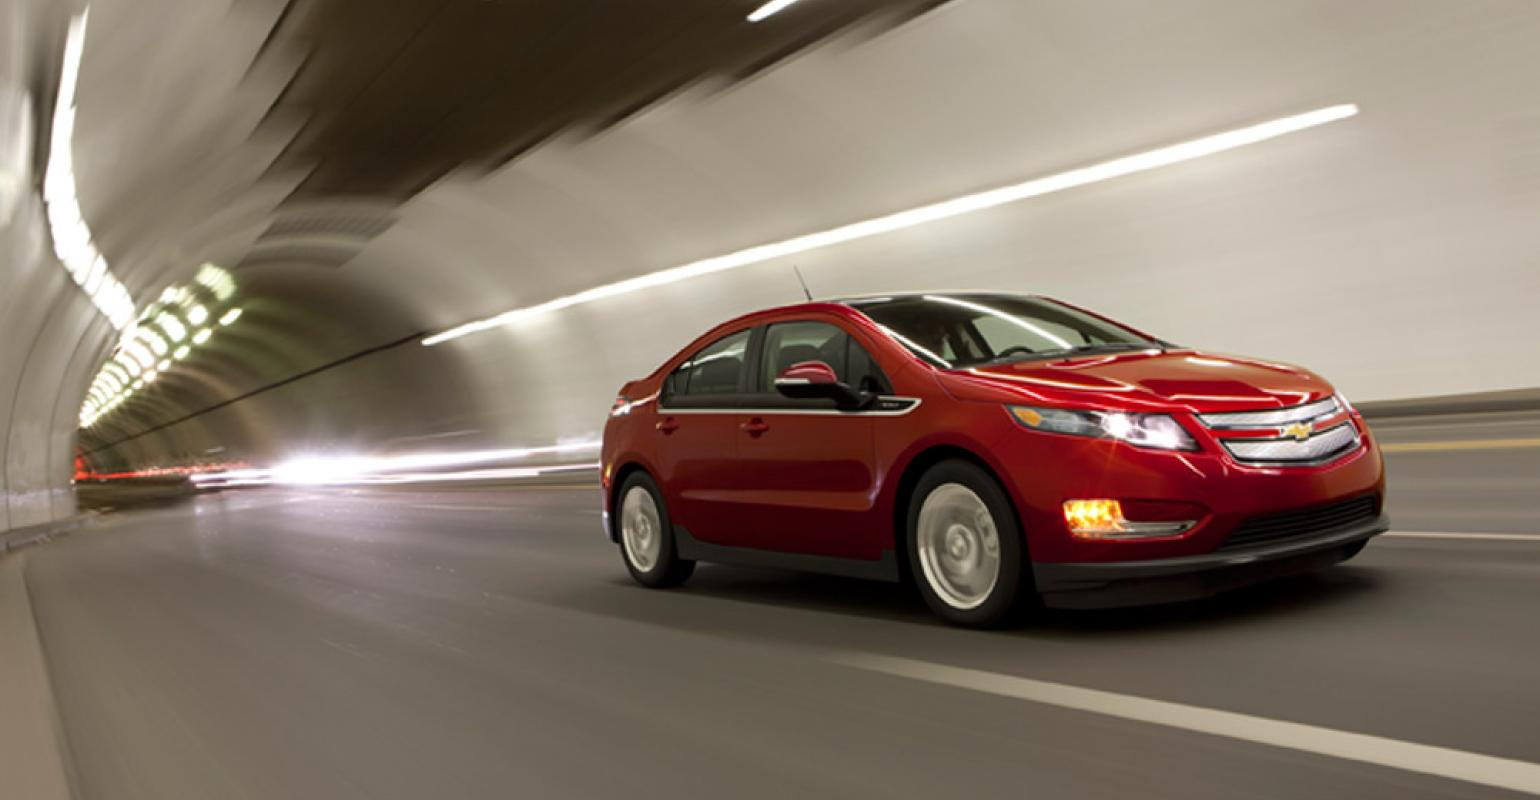 March Sales To Reveal New Momentum For Chevy Volt Exec Says Wardsauto Car